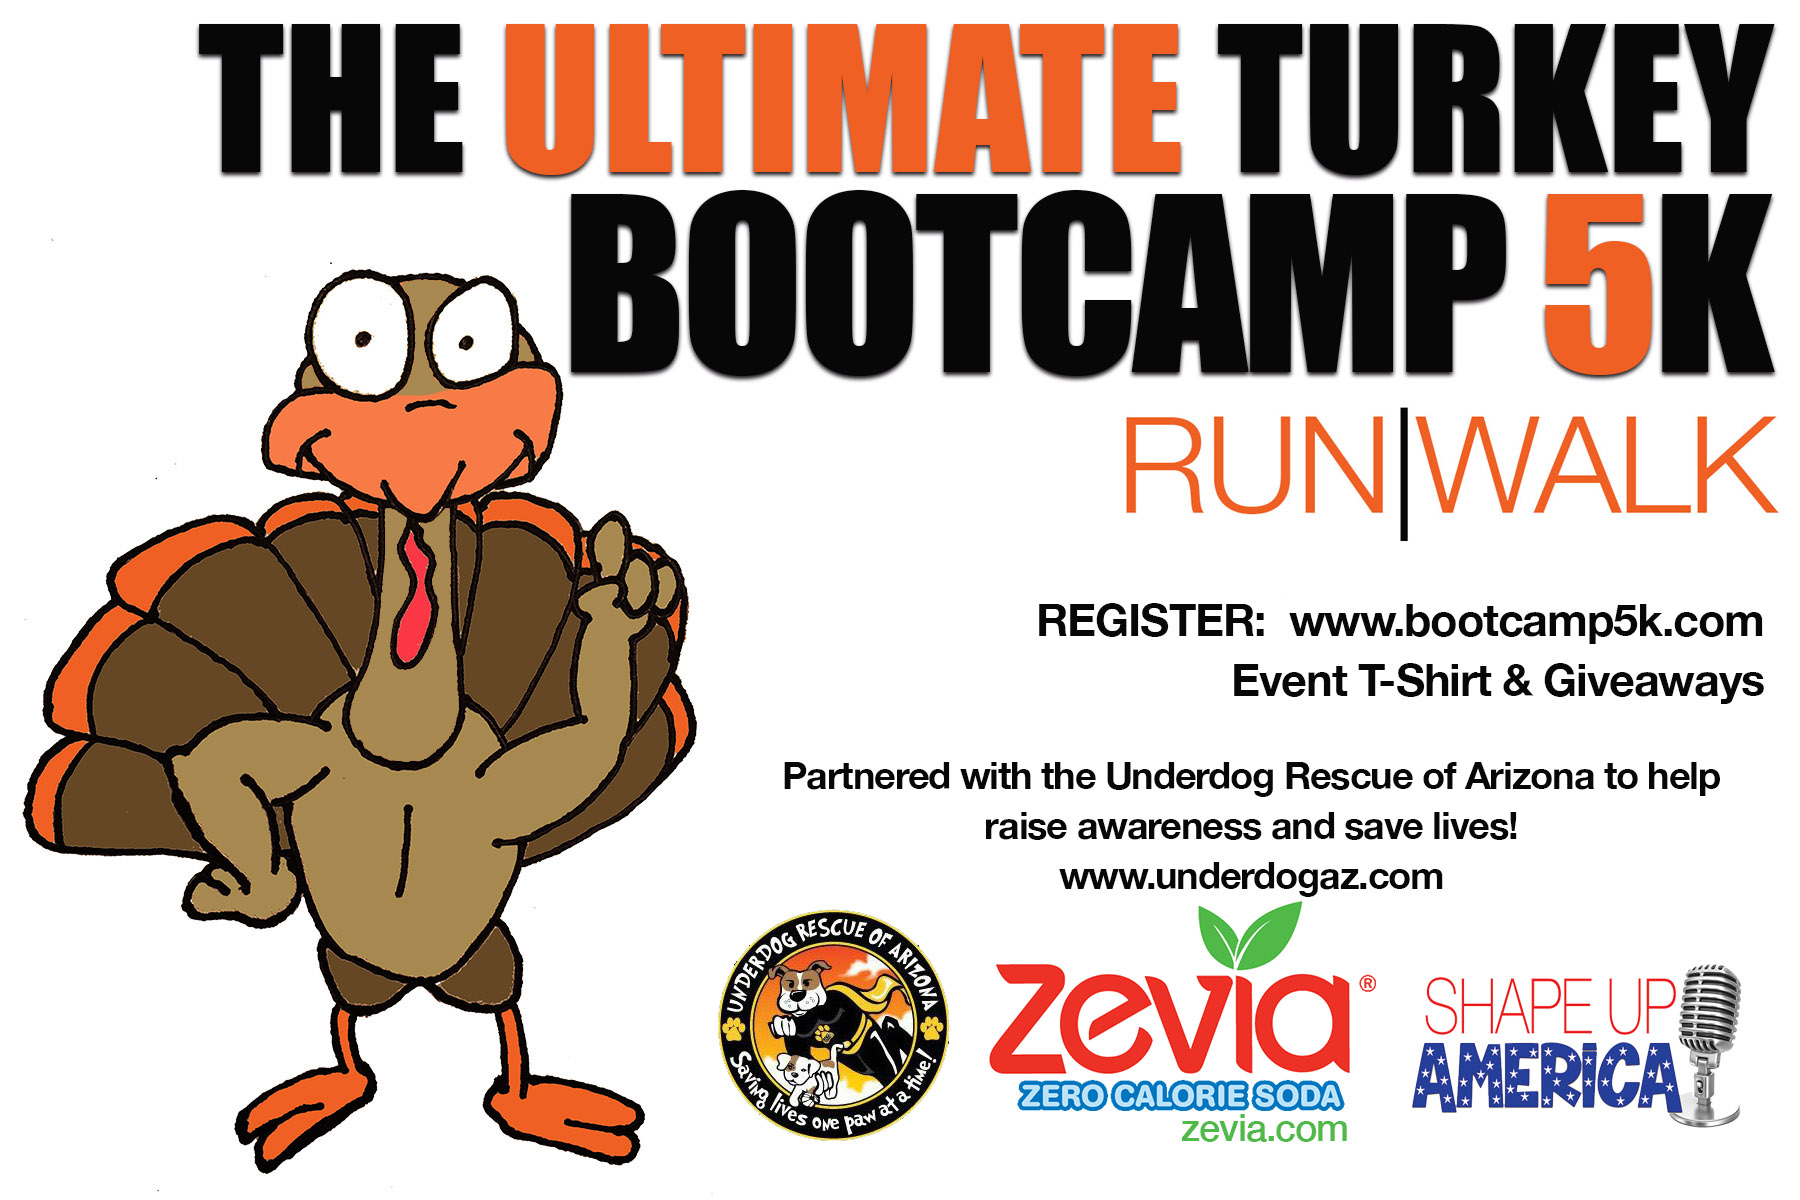 images.raceentry.com/infopages/ultimate-turkey-bootcamp-5k-runwalk-infopages-1795.jpg